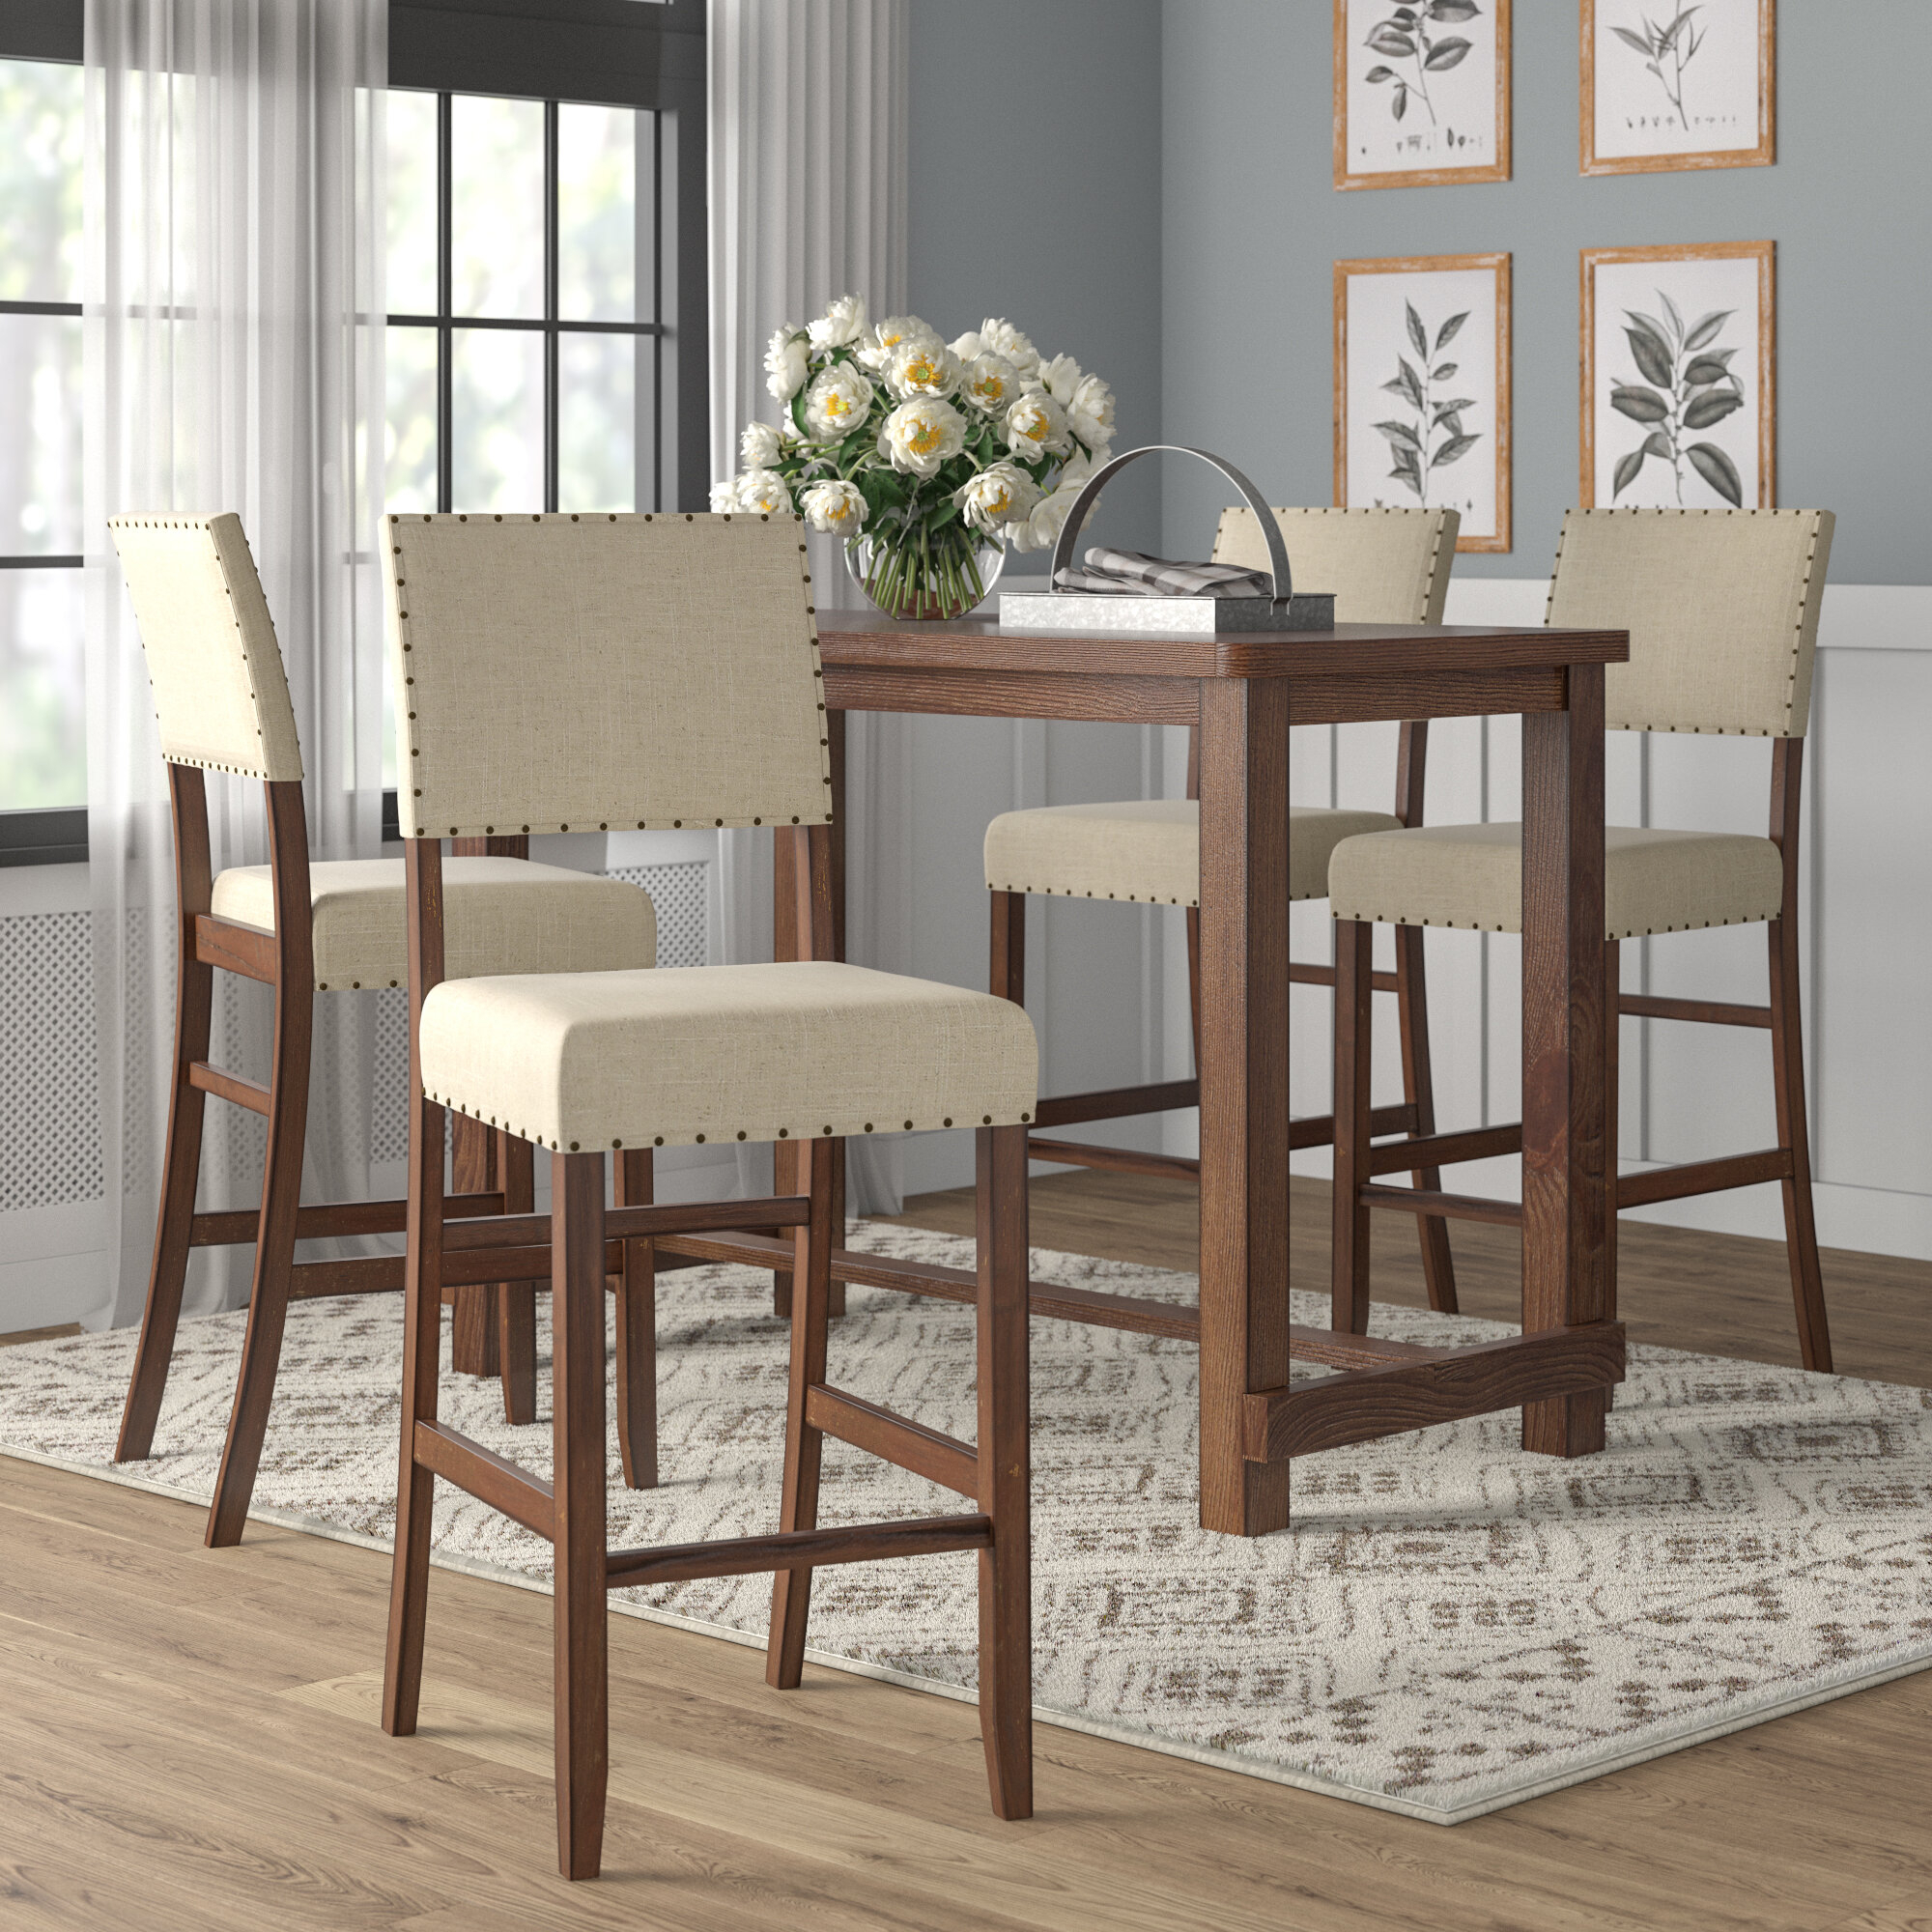 Orth 5 Piece Counter Height Dining Set With Most Popular Tavarez 5 Piece Dining Sets (Image 13 of 20)